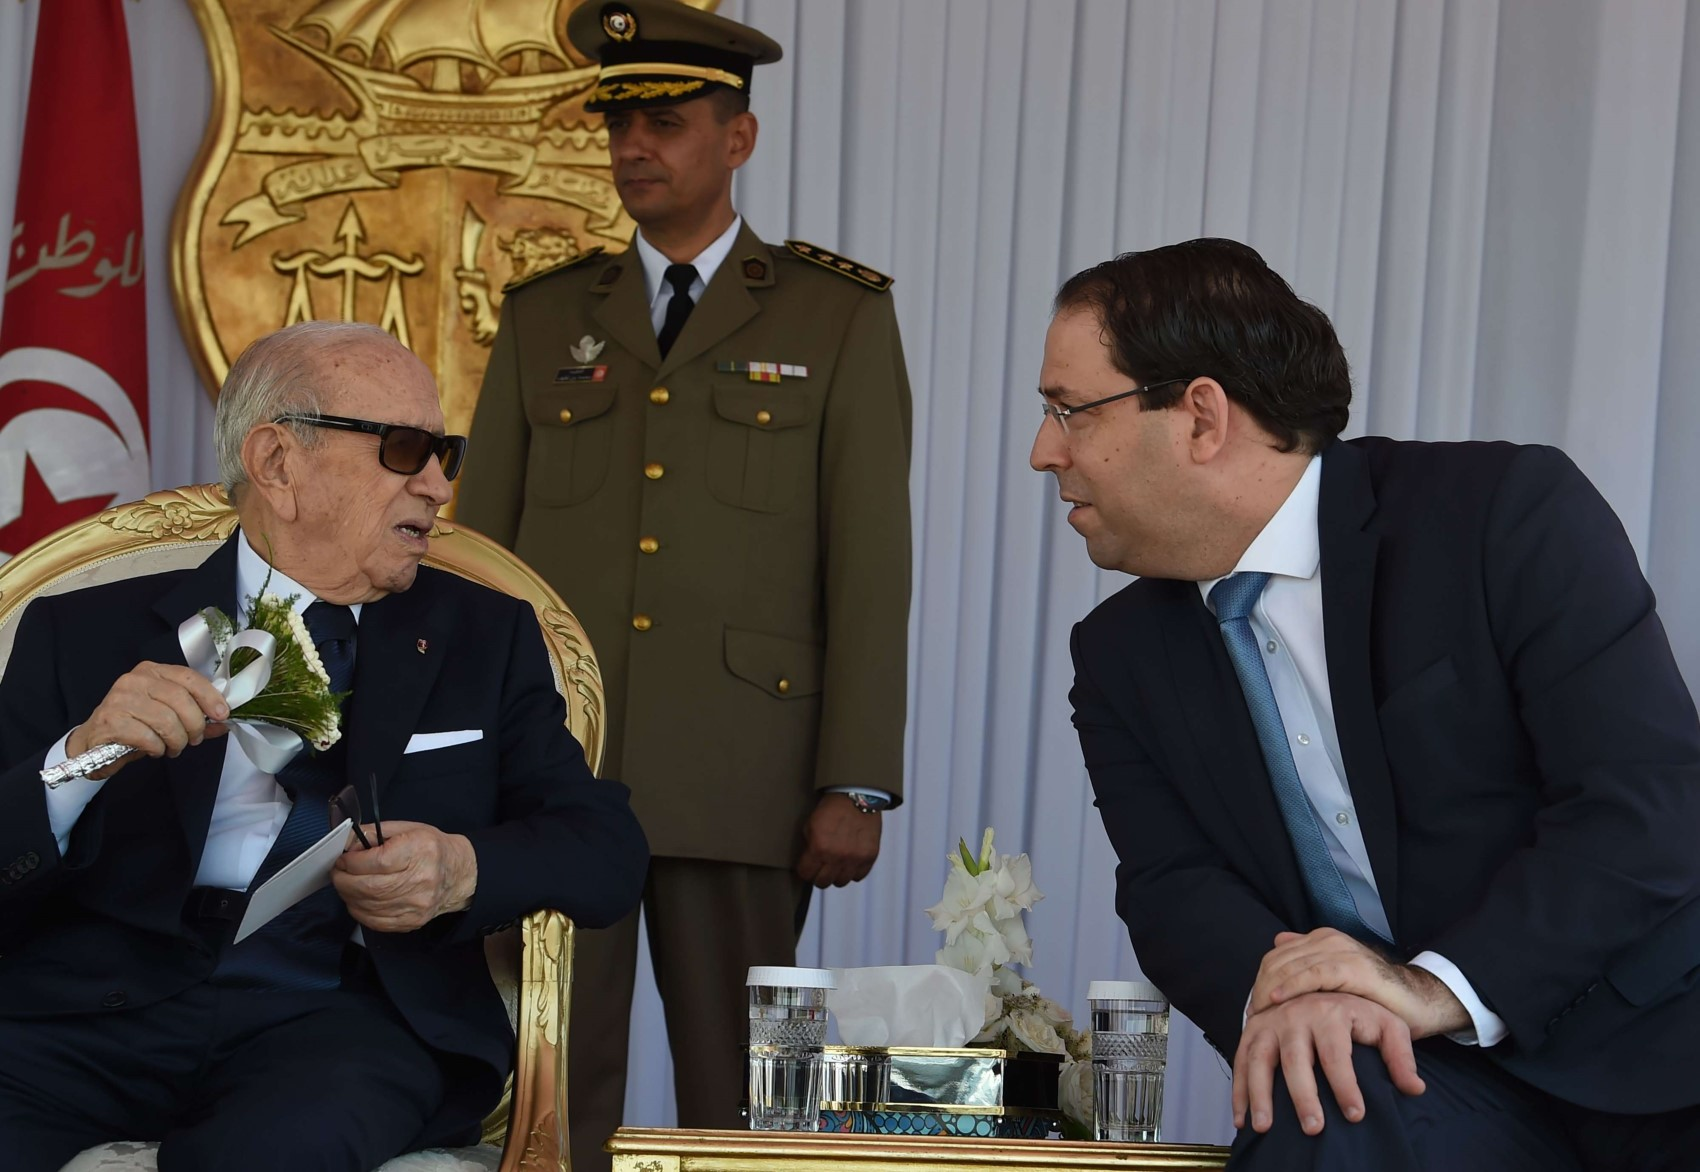 Tunisian President Beji Caid Essebsi(L) and Prime Minister Youssef Chahed attend the Tunisian naval forces military intervention drill on June 25, 2018 at the port of La Goulette in capital Tunis. (AFP)